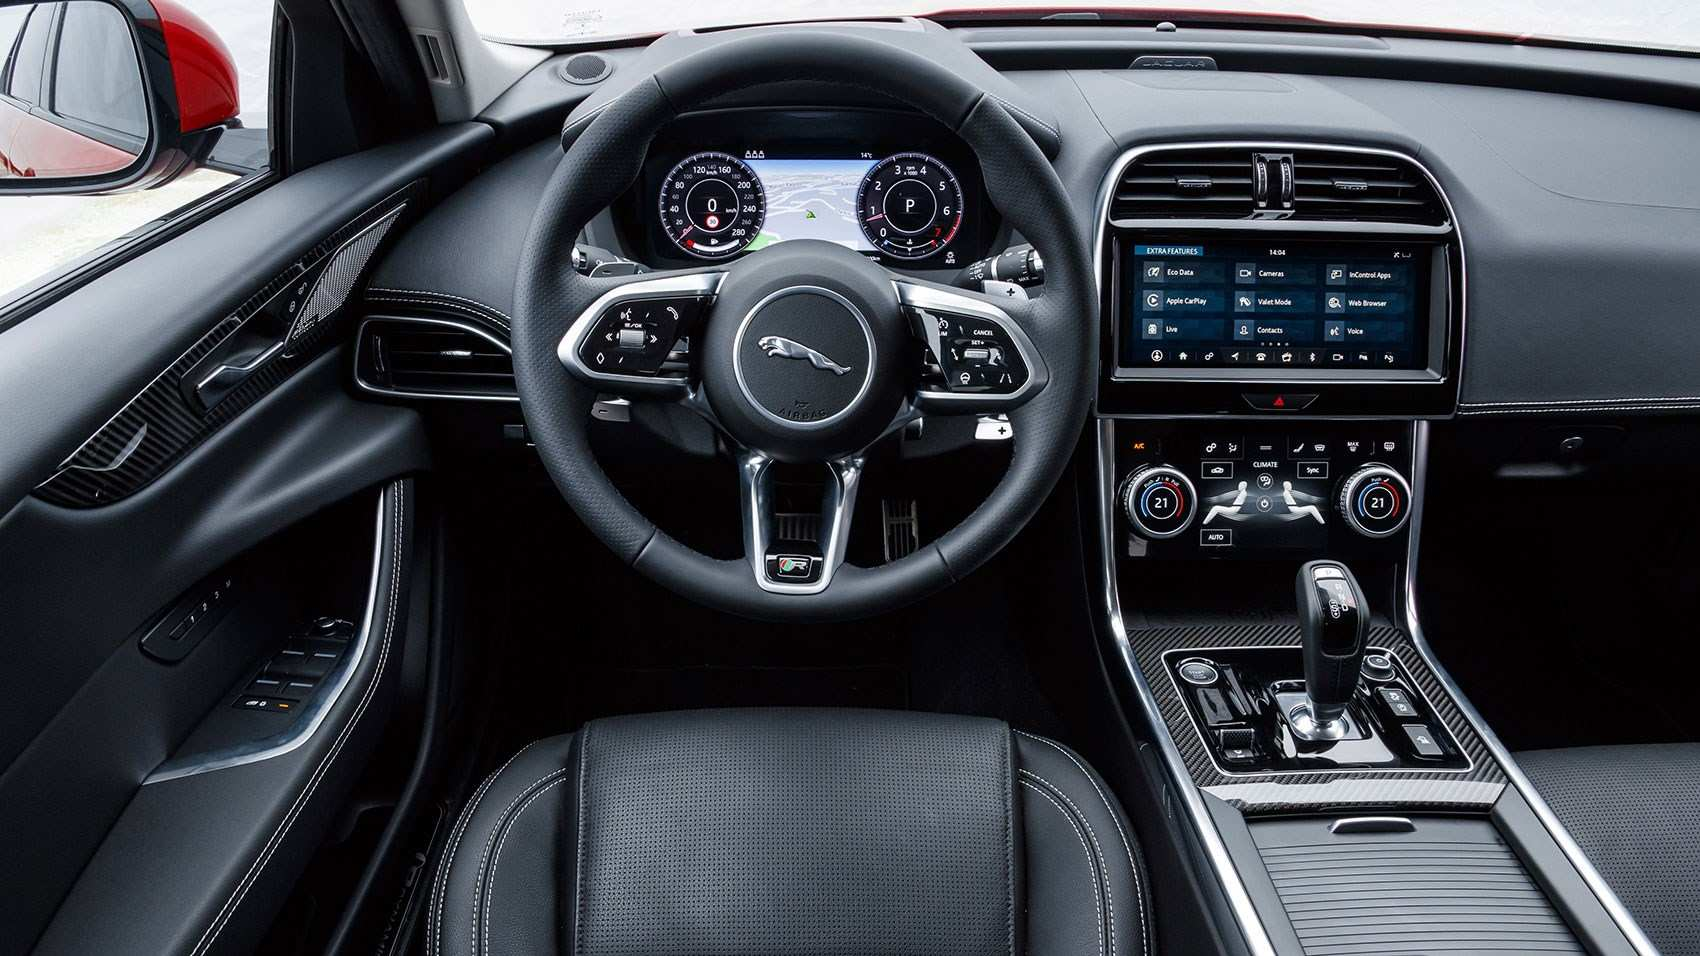 54 Great New Jaguar Xe 2020 Interior Wallpaper By New Jaguar Xe 2020 Interior Car Review Car Review